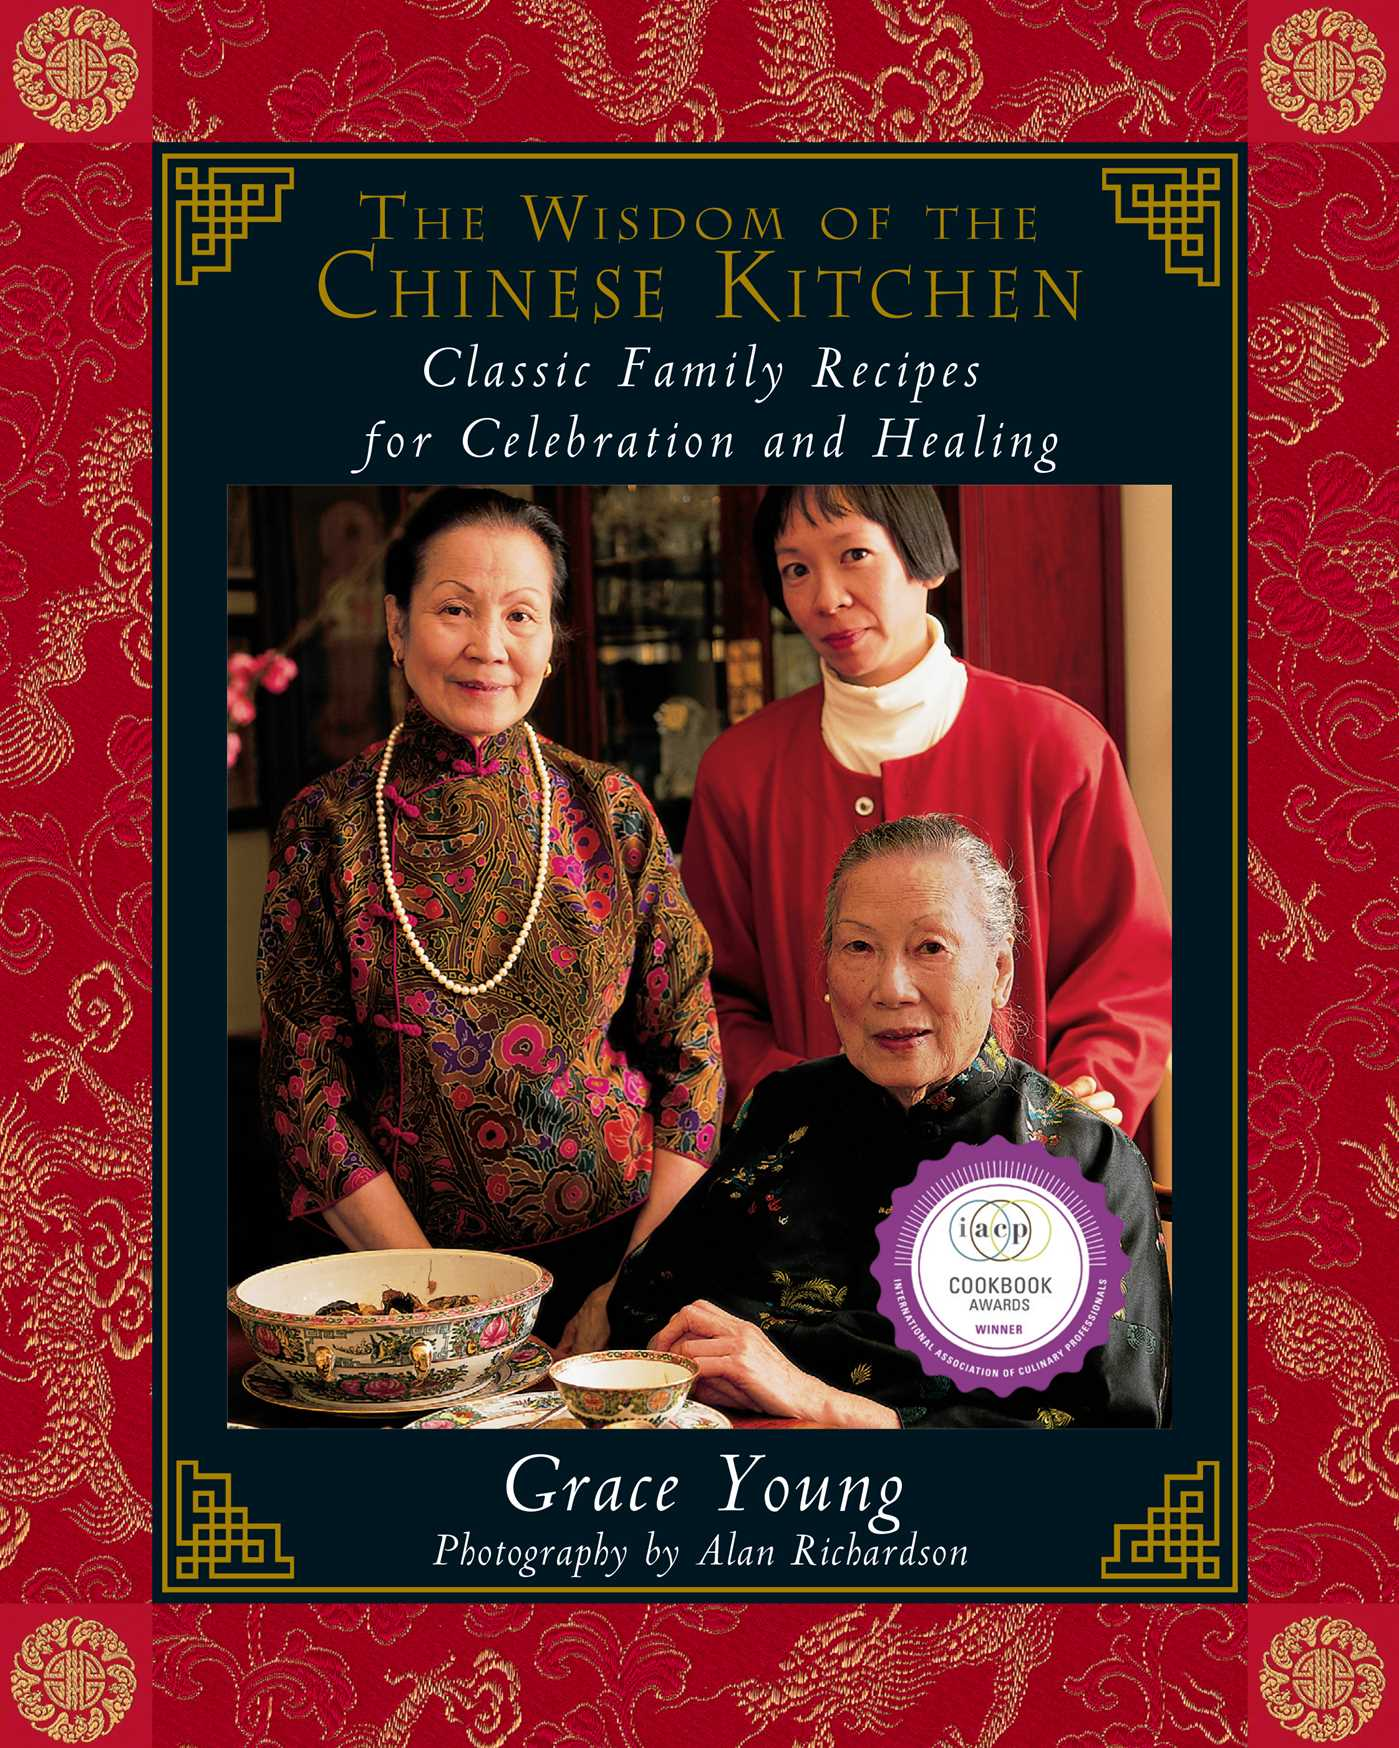 The wisdom of the chinese kitchen 9781439142561 hr